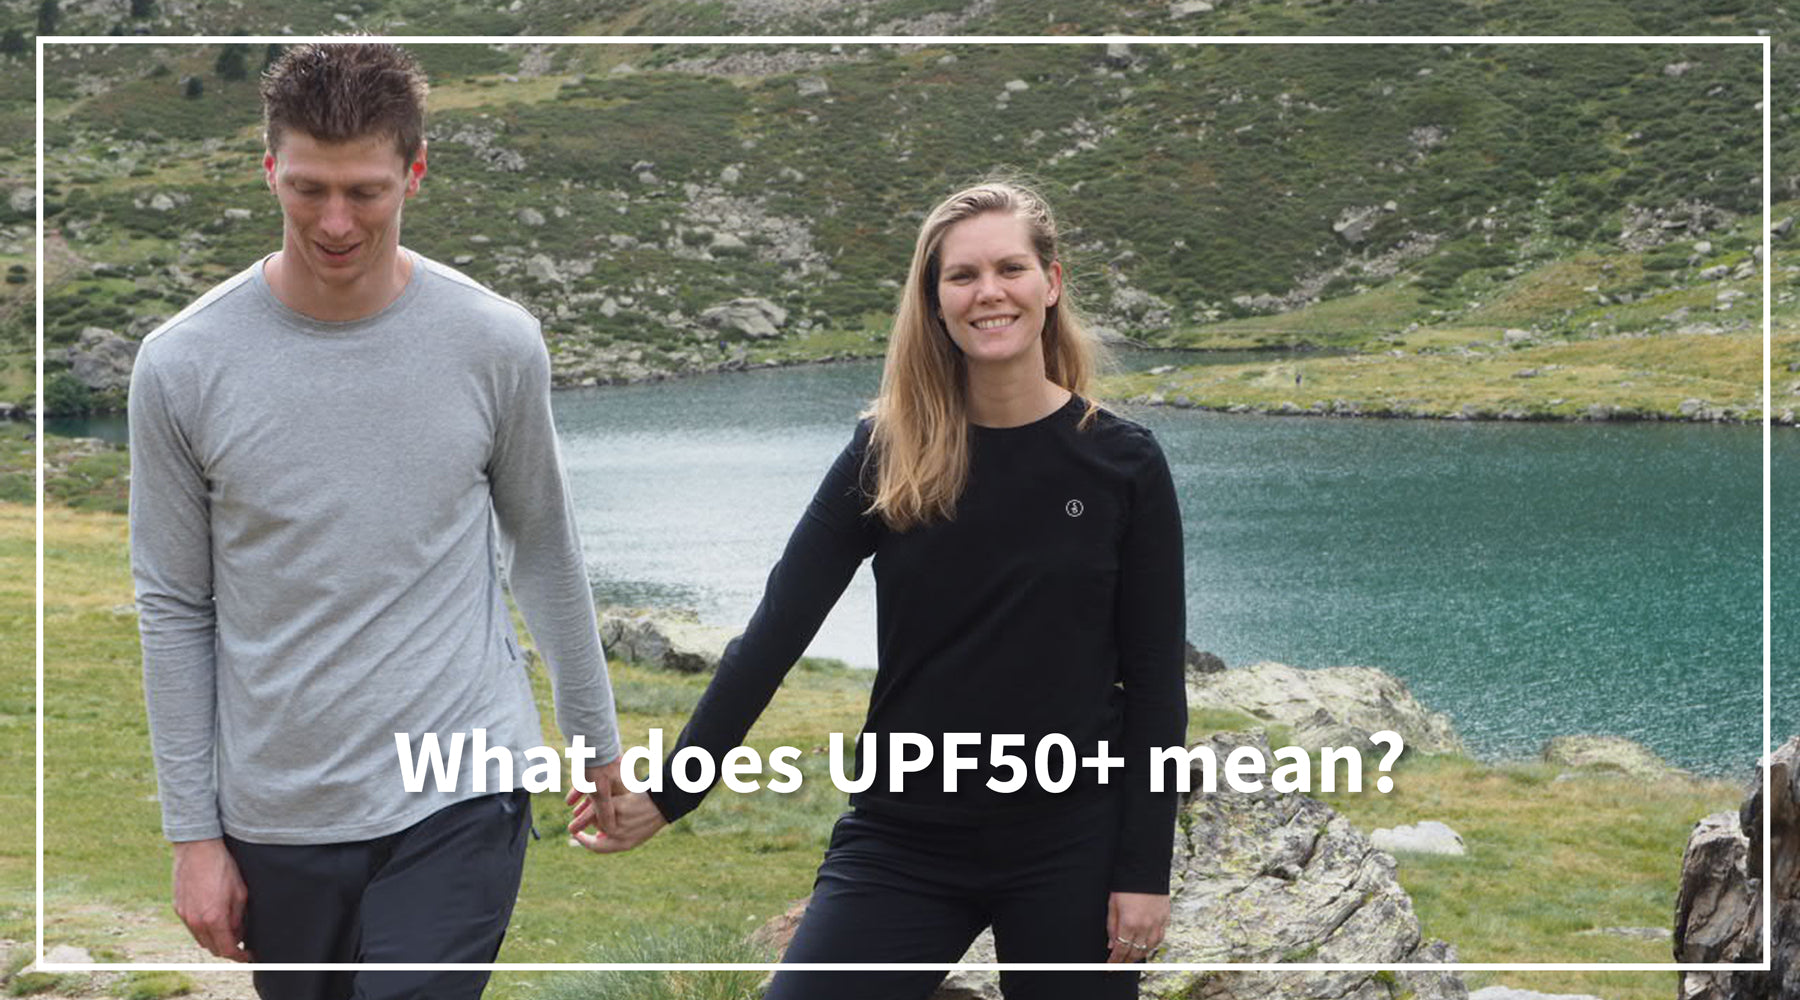 Solbari blog: What does UPF50+ mean